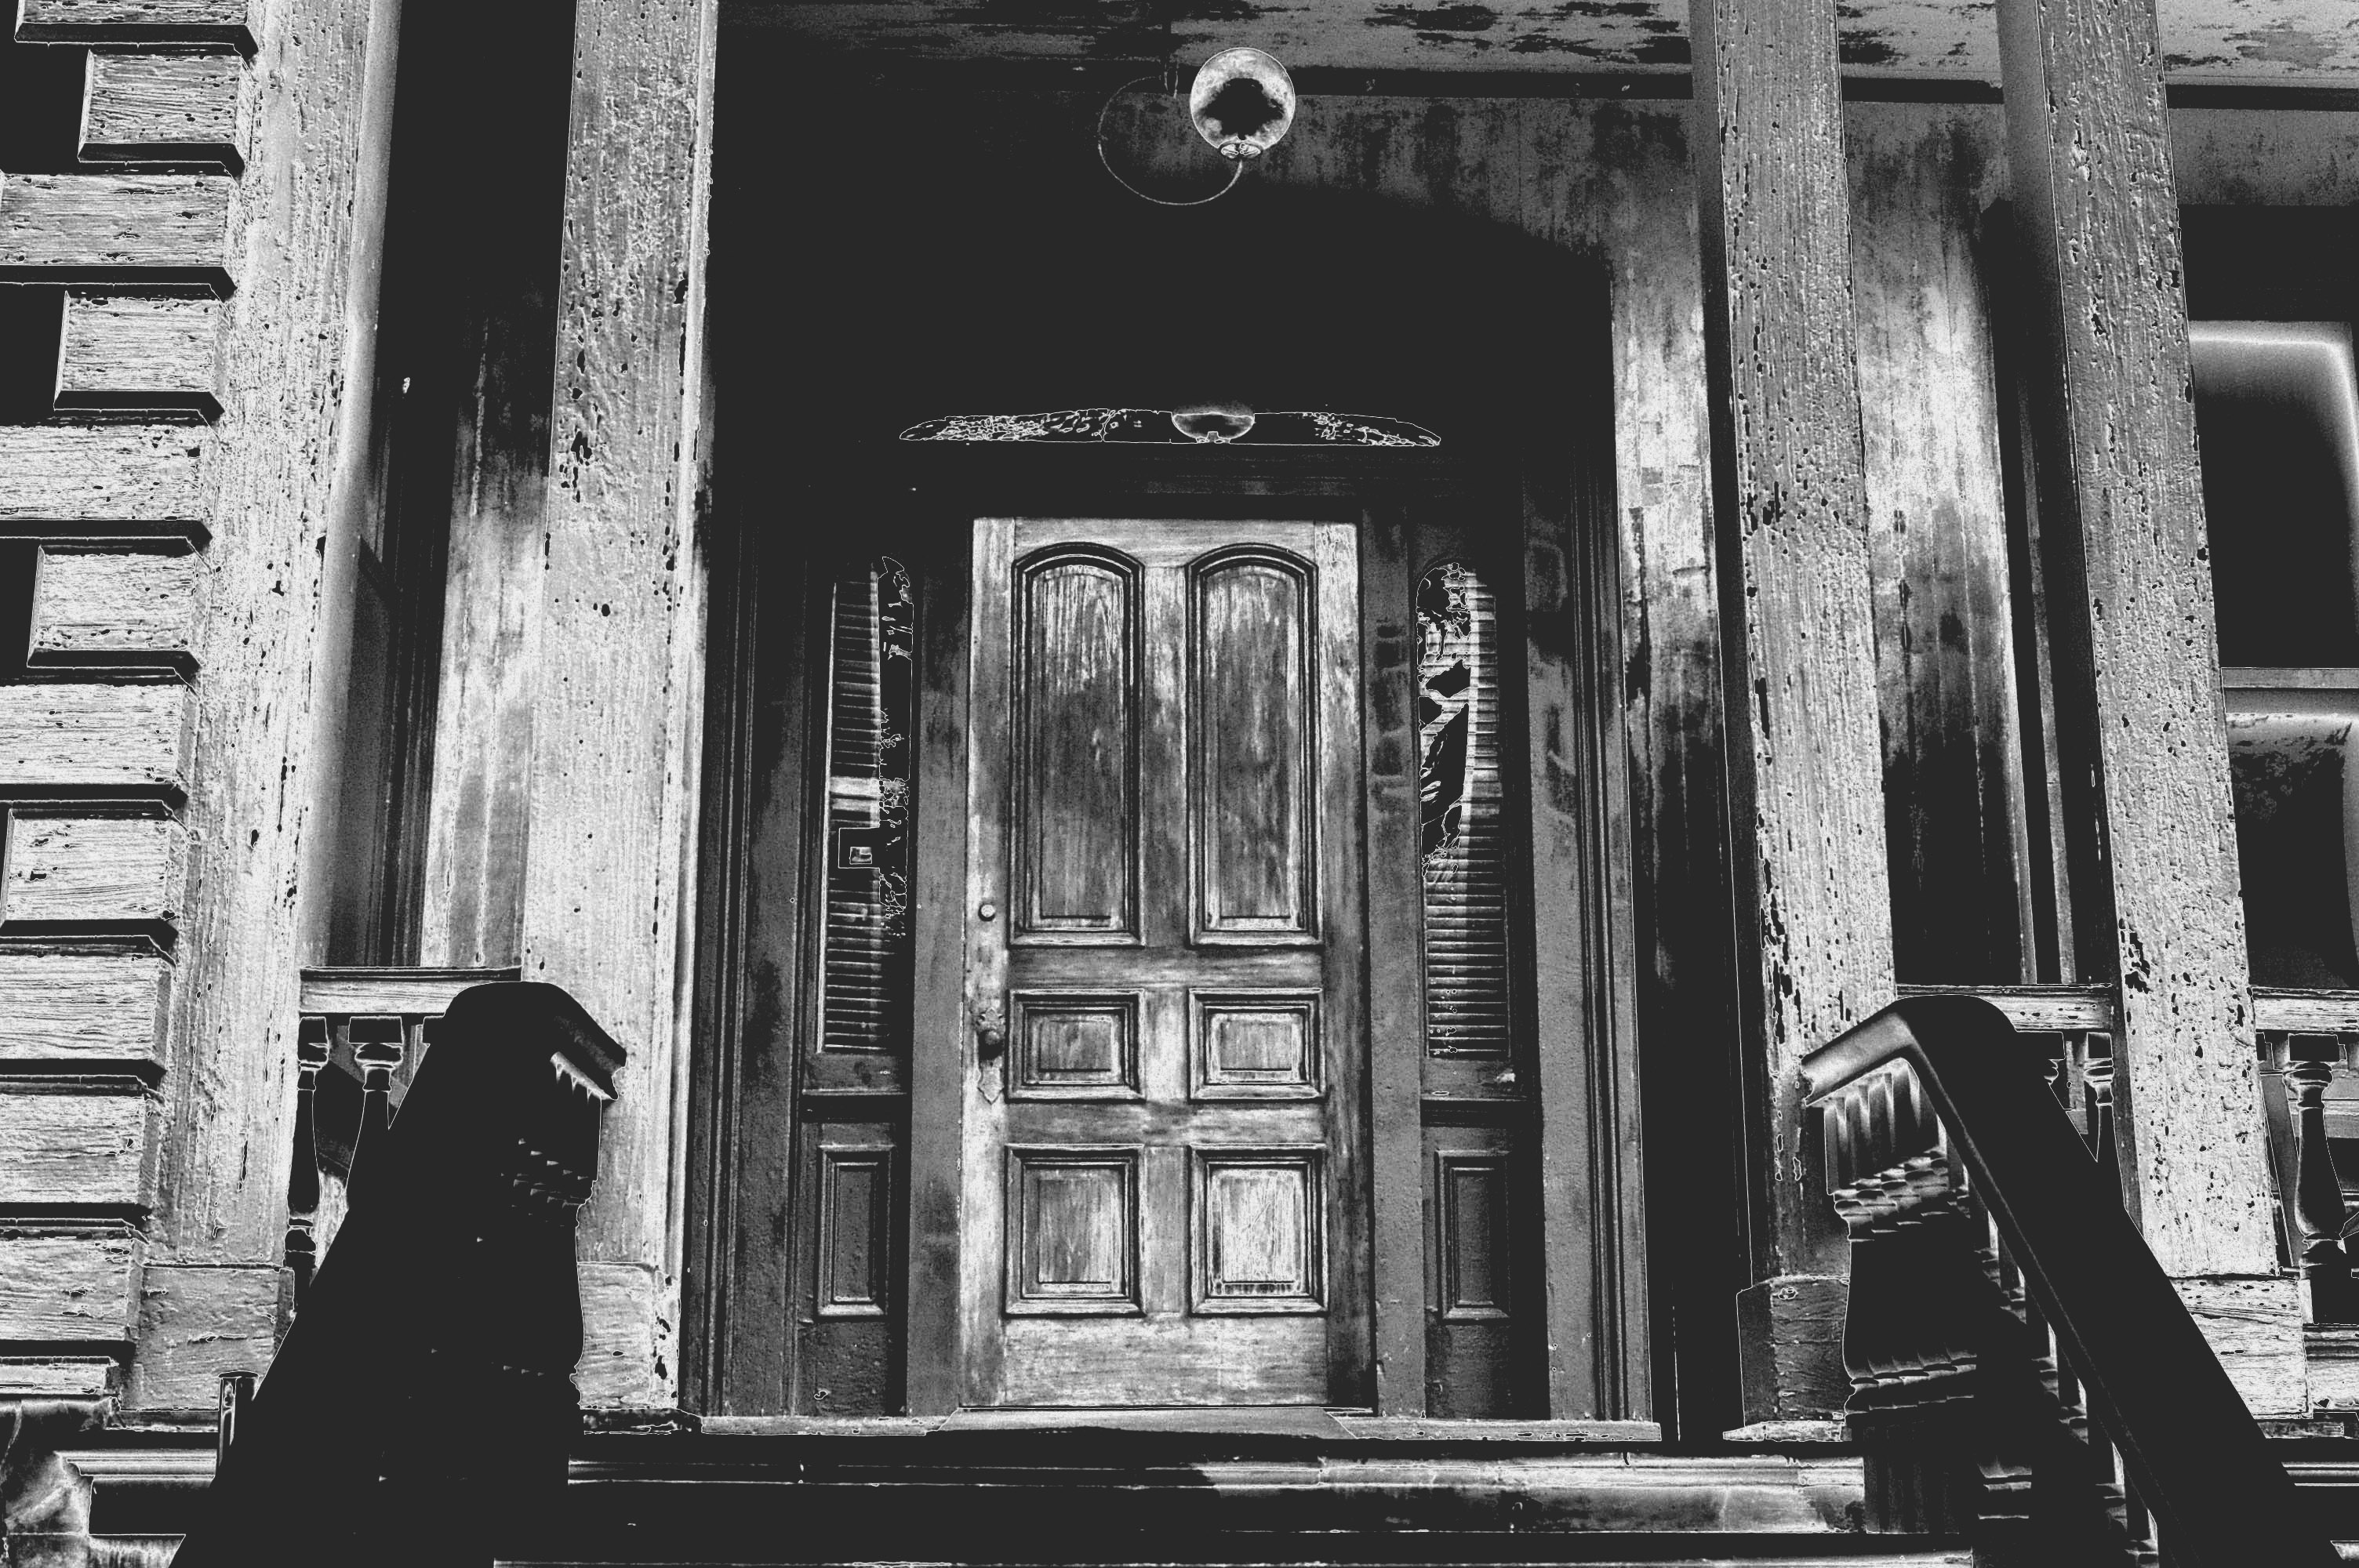 Creepy Door & Creepy Door By AustriaAngloAlliance